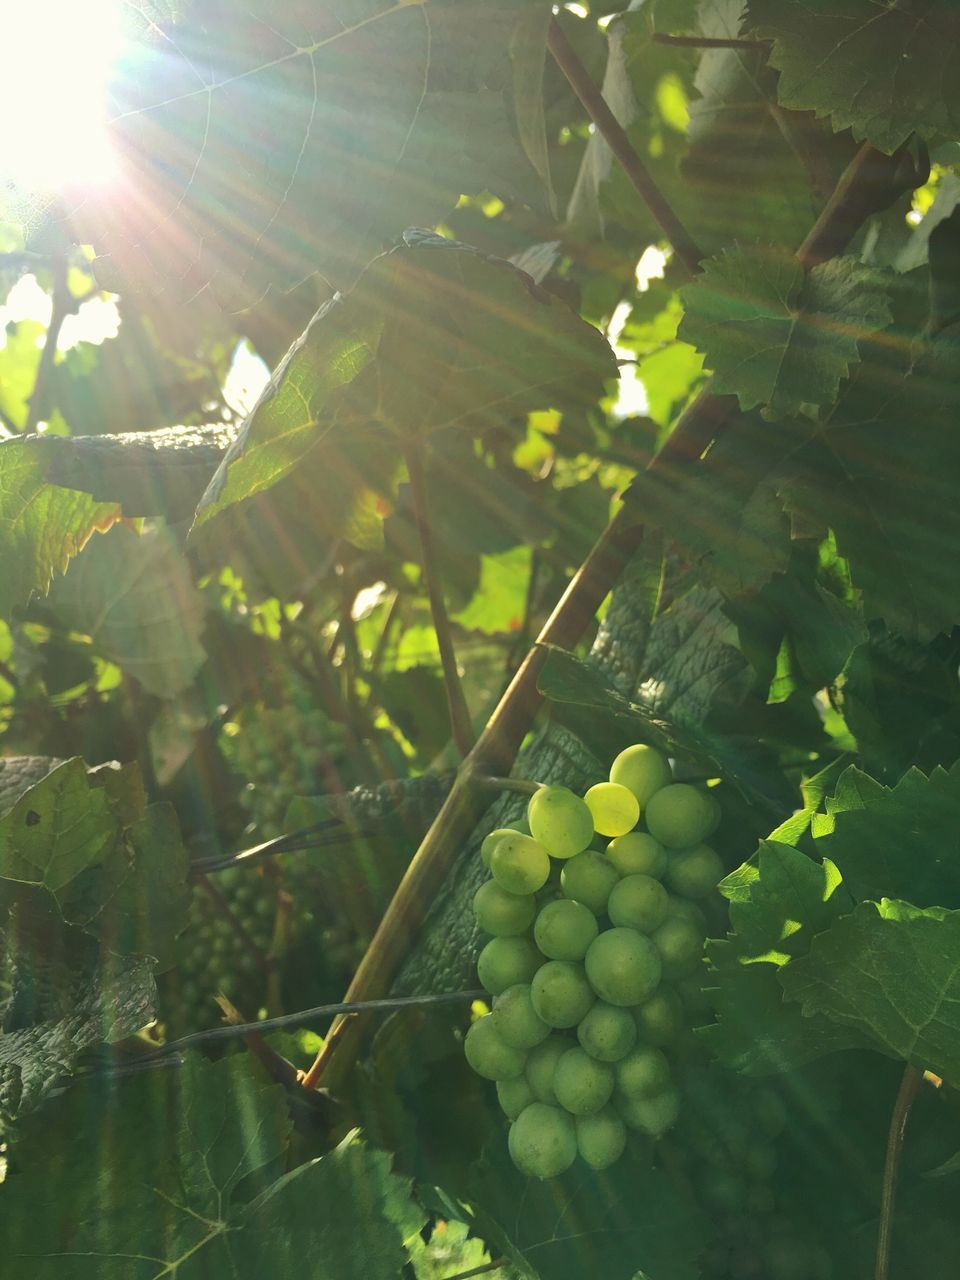 green color, growth, fruit, leaf, food and drink, day, sunlight, outdoors, no people, grape, tree, nature, freshness, branch, healthy eating, food, beauty in nature, close-up